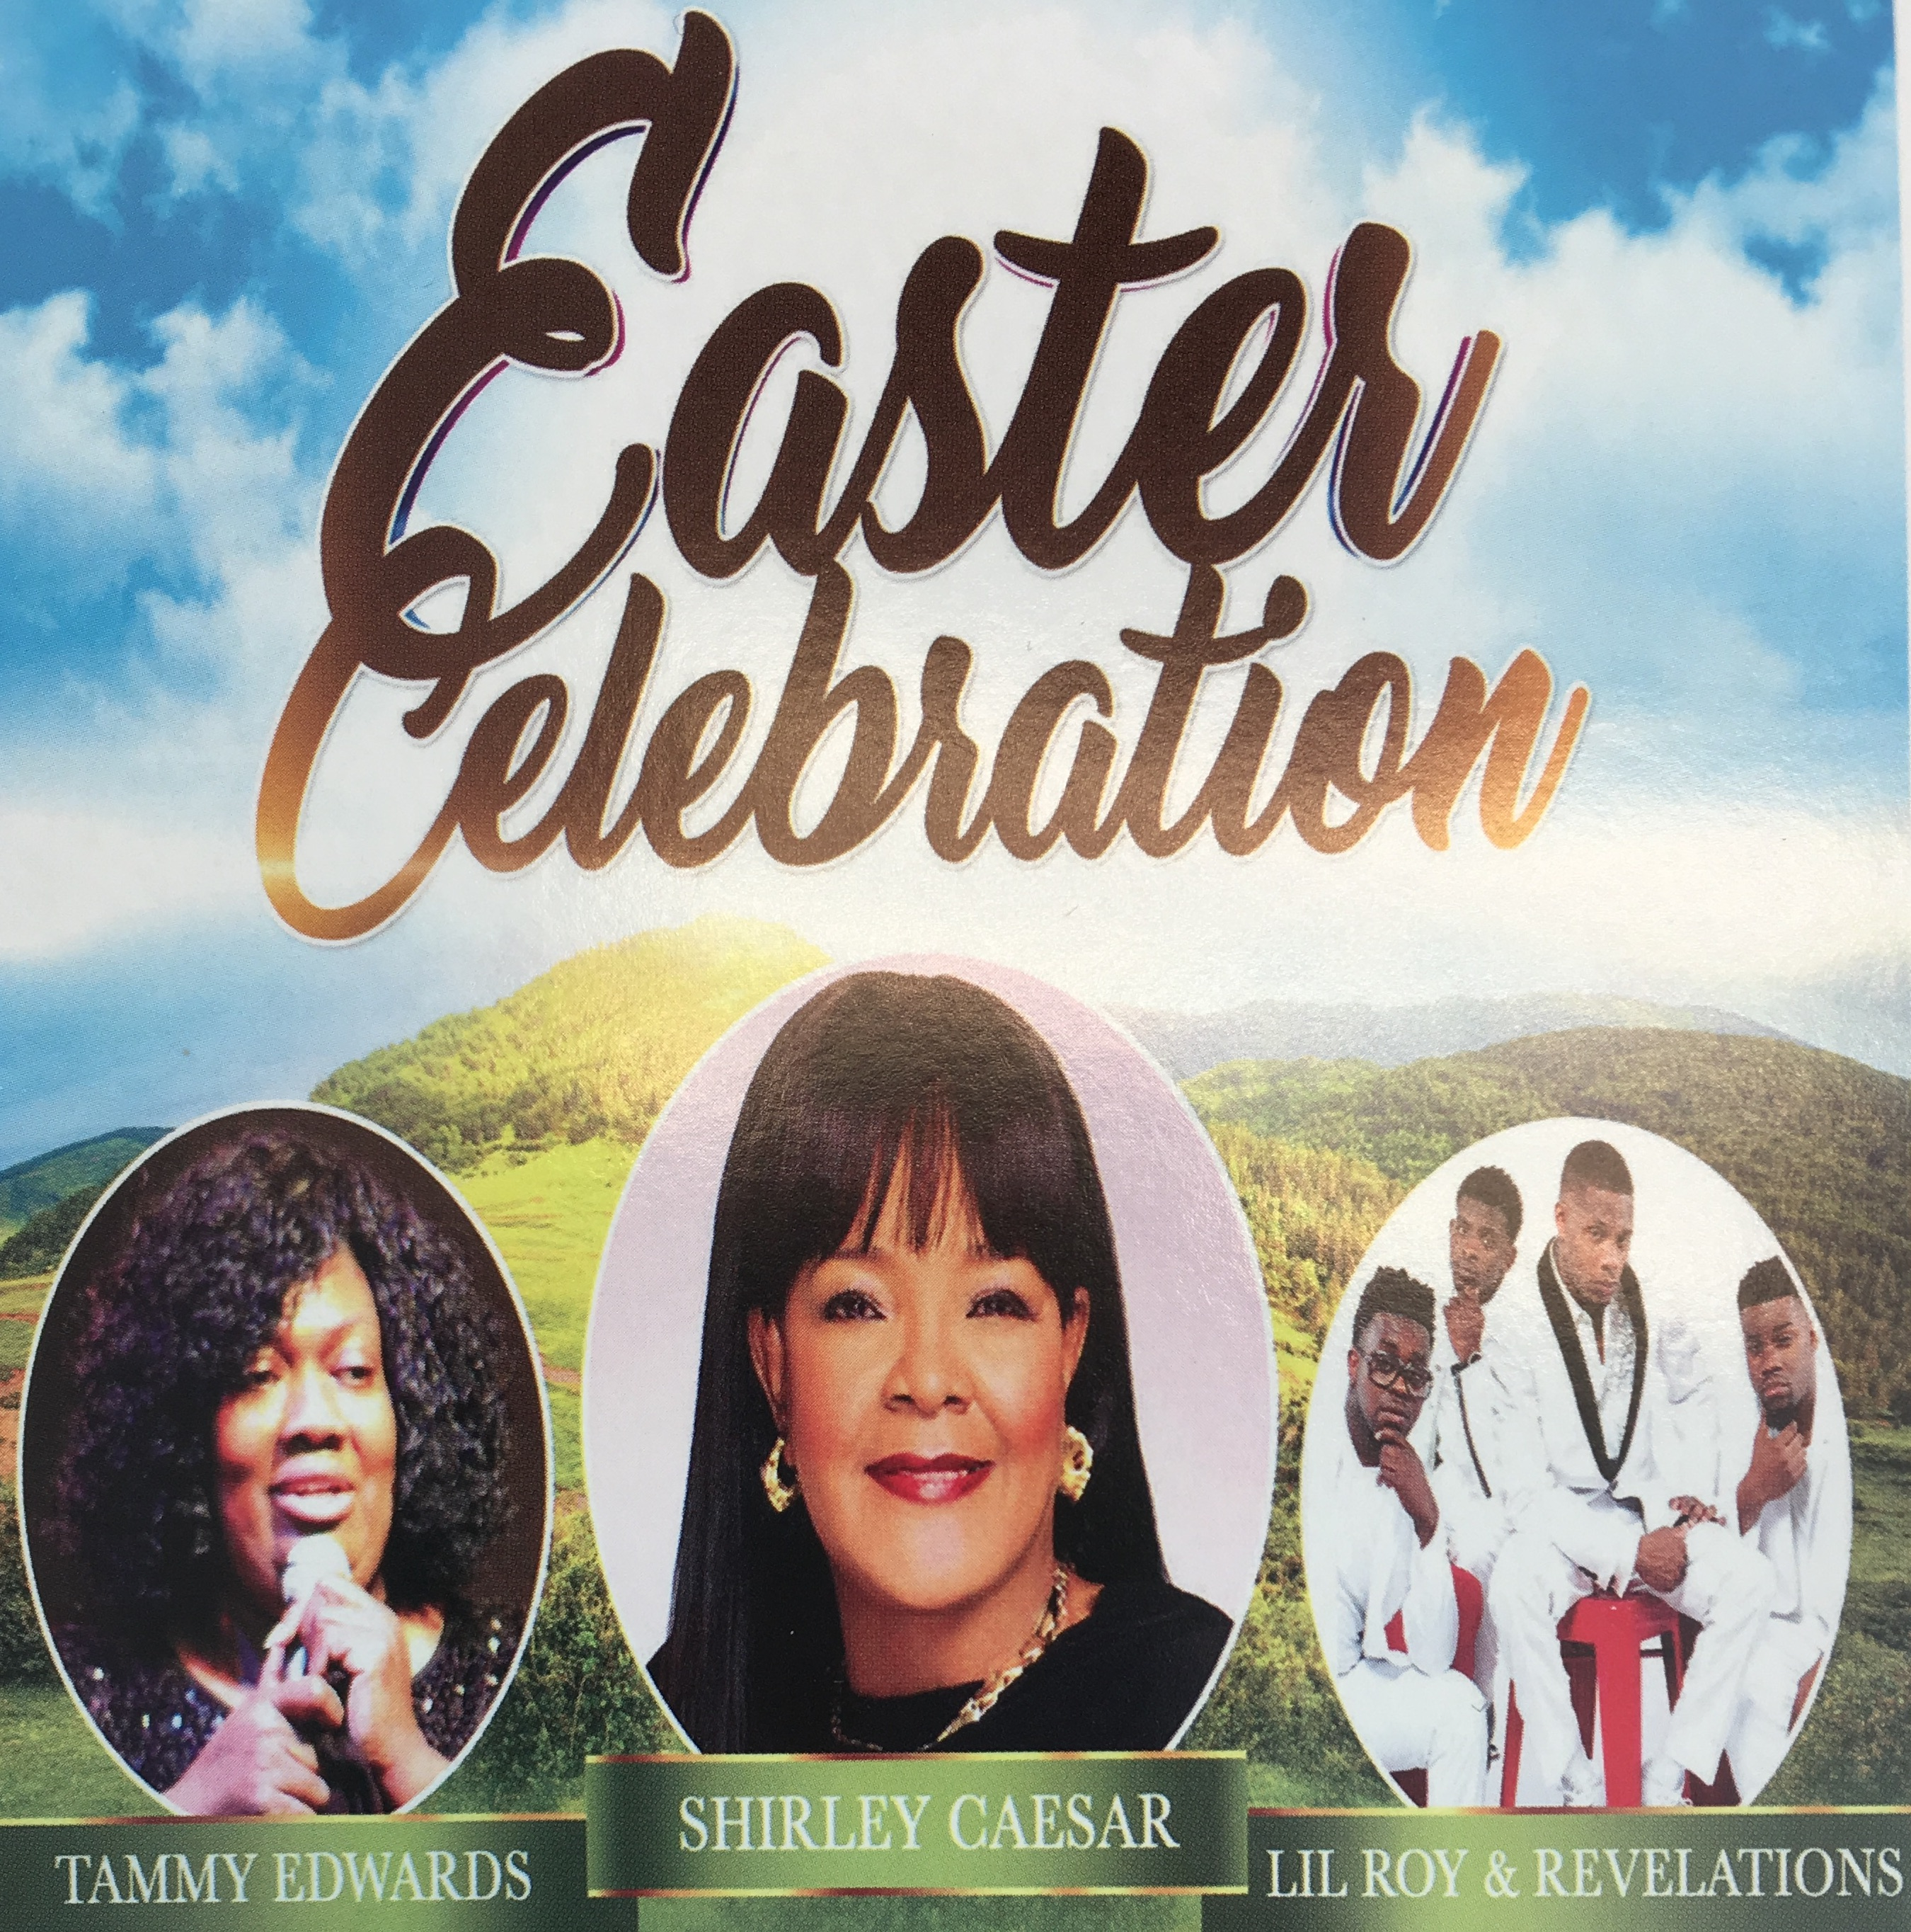 Big Easter Celebration Register To Win